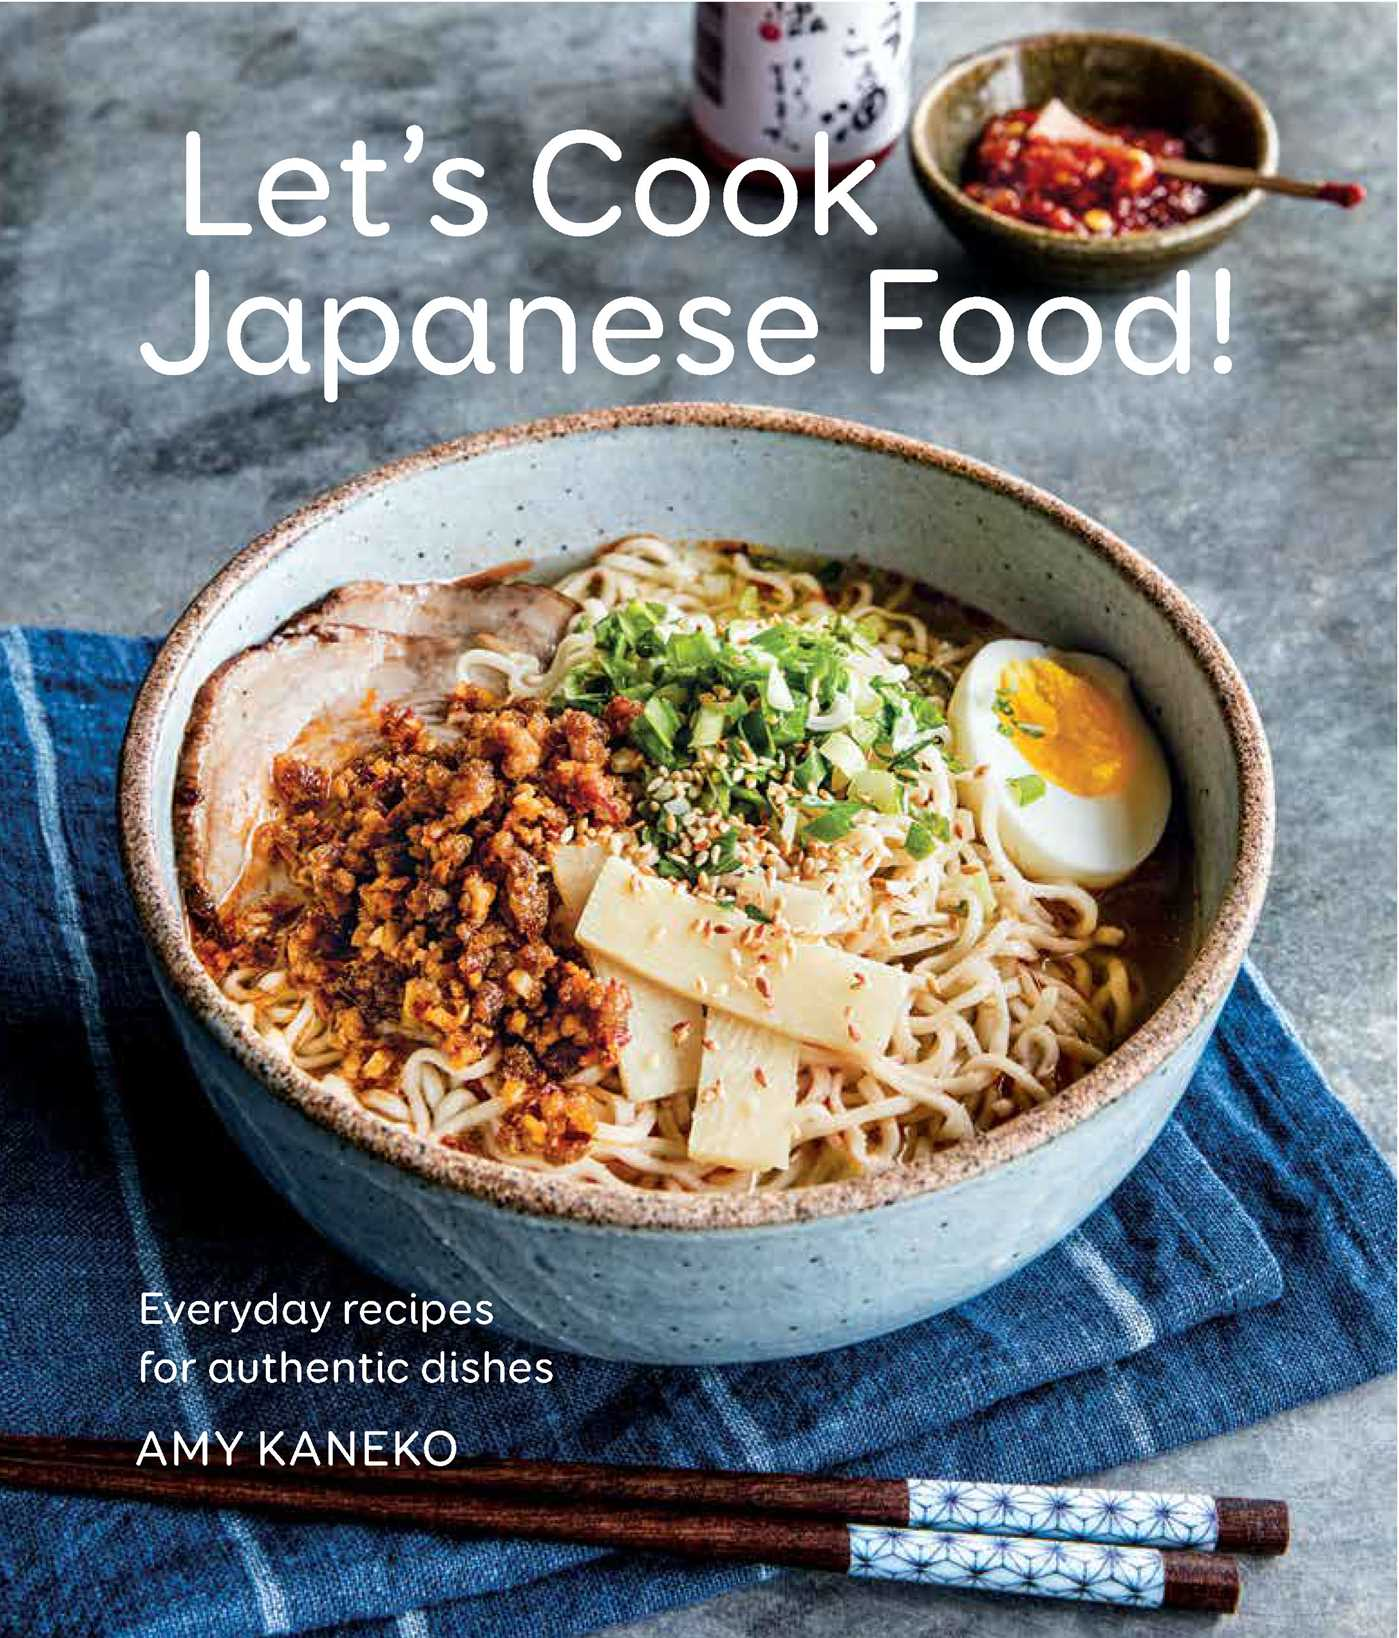 Lets cook japanese food book by amy kaneko official publisher book cover image jpg lets cook japanese food forumfinder Gallery